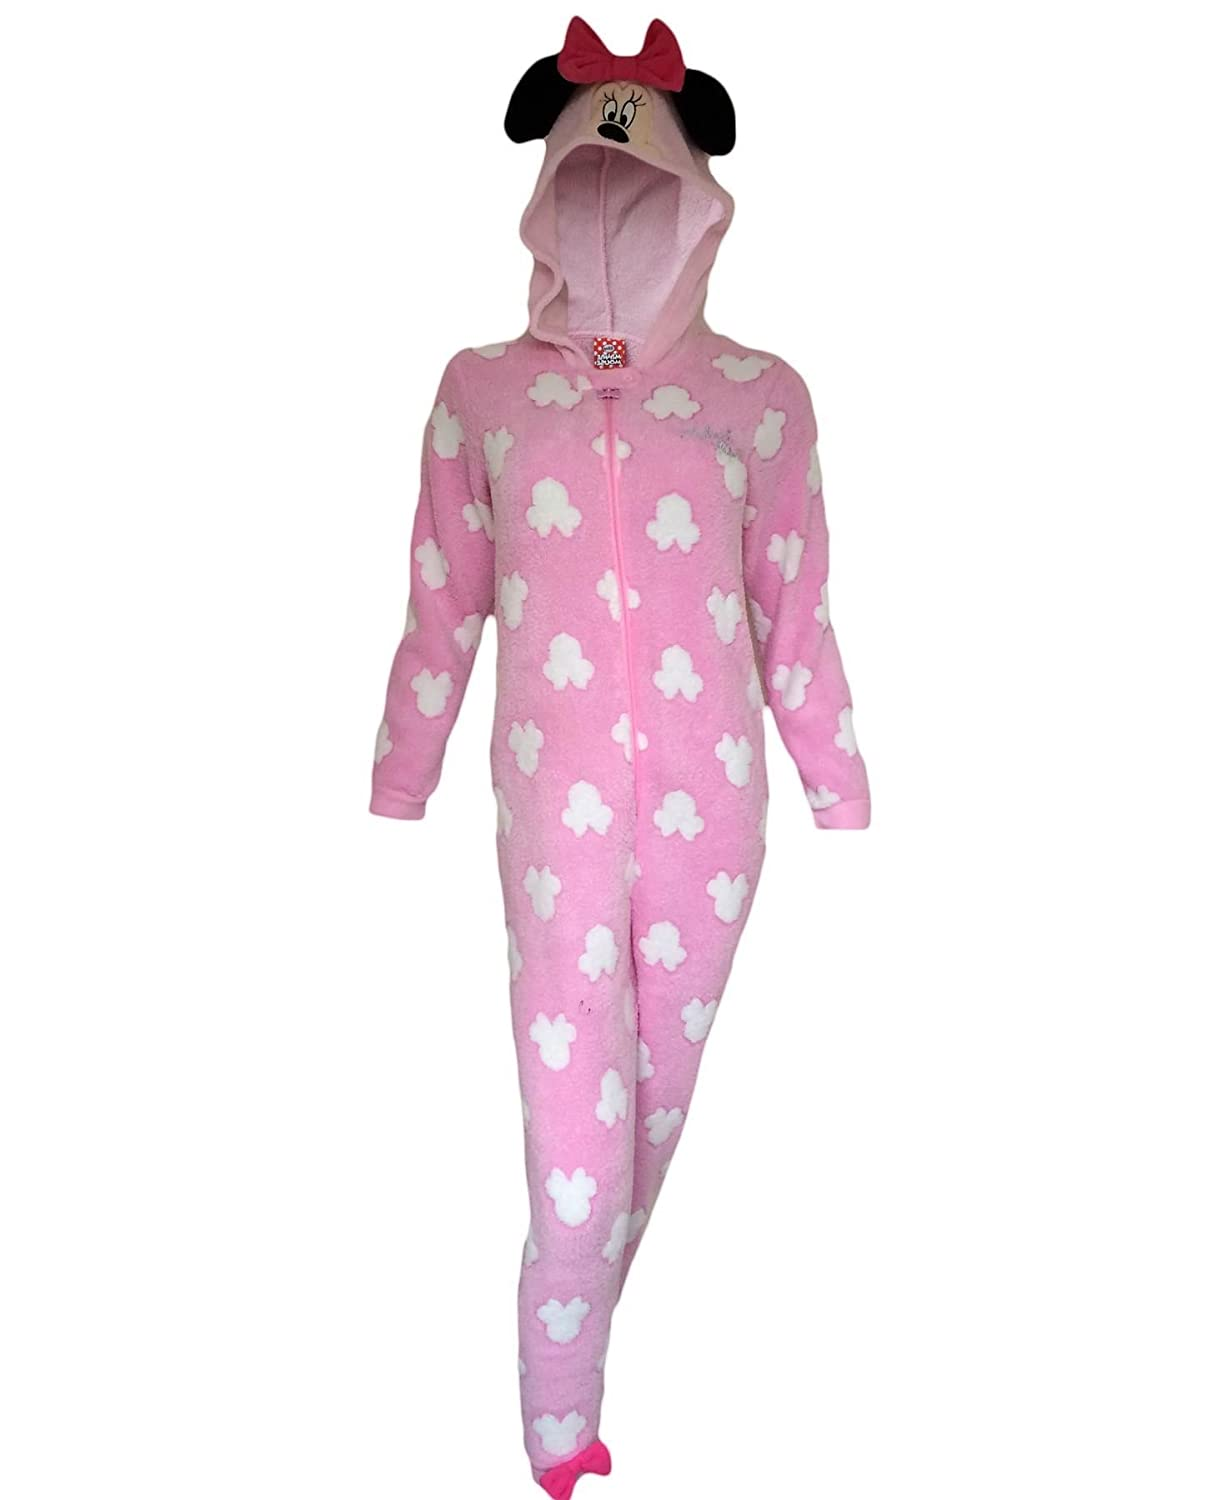 Amazon.com: Pink Minnie Mouse Disney Onesie Onsey Onesy Age 11-12 Years: Clothing